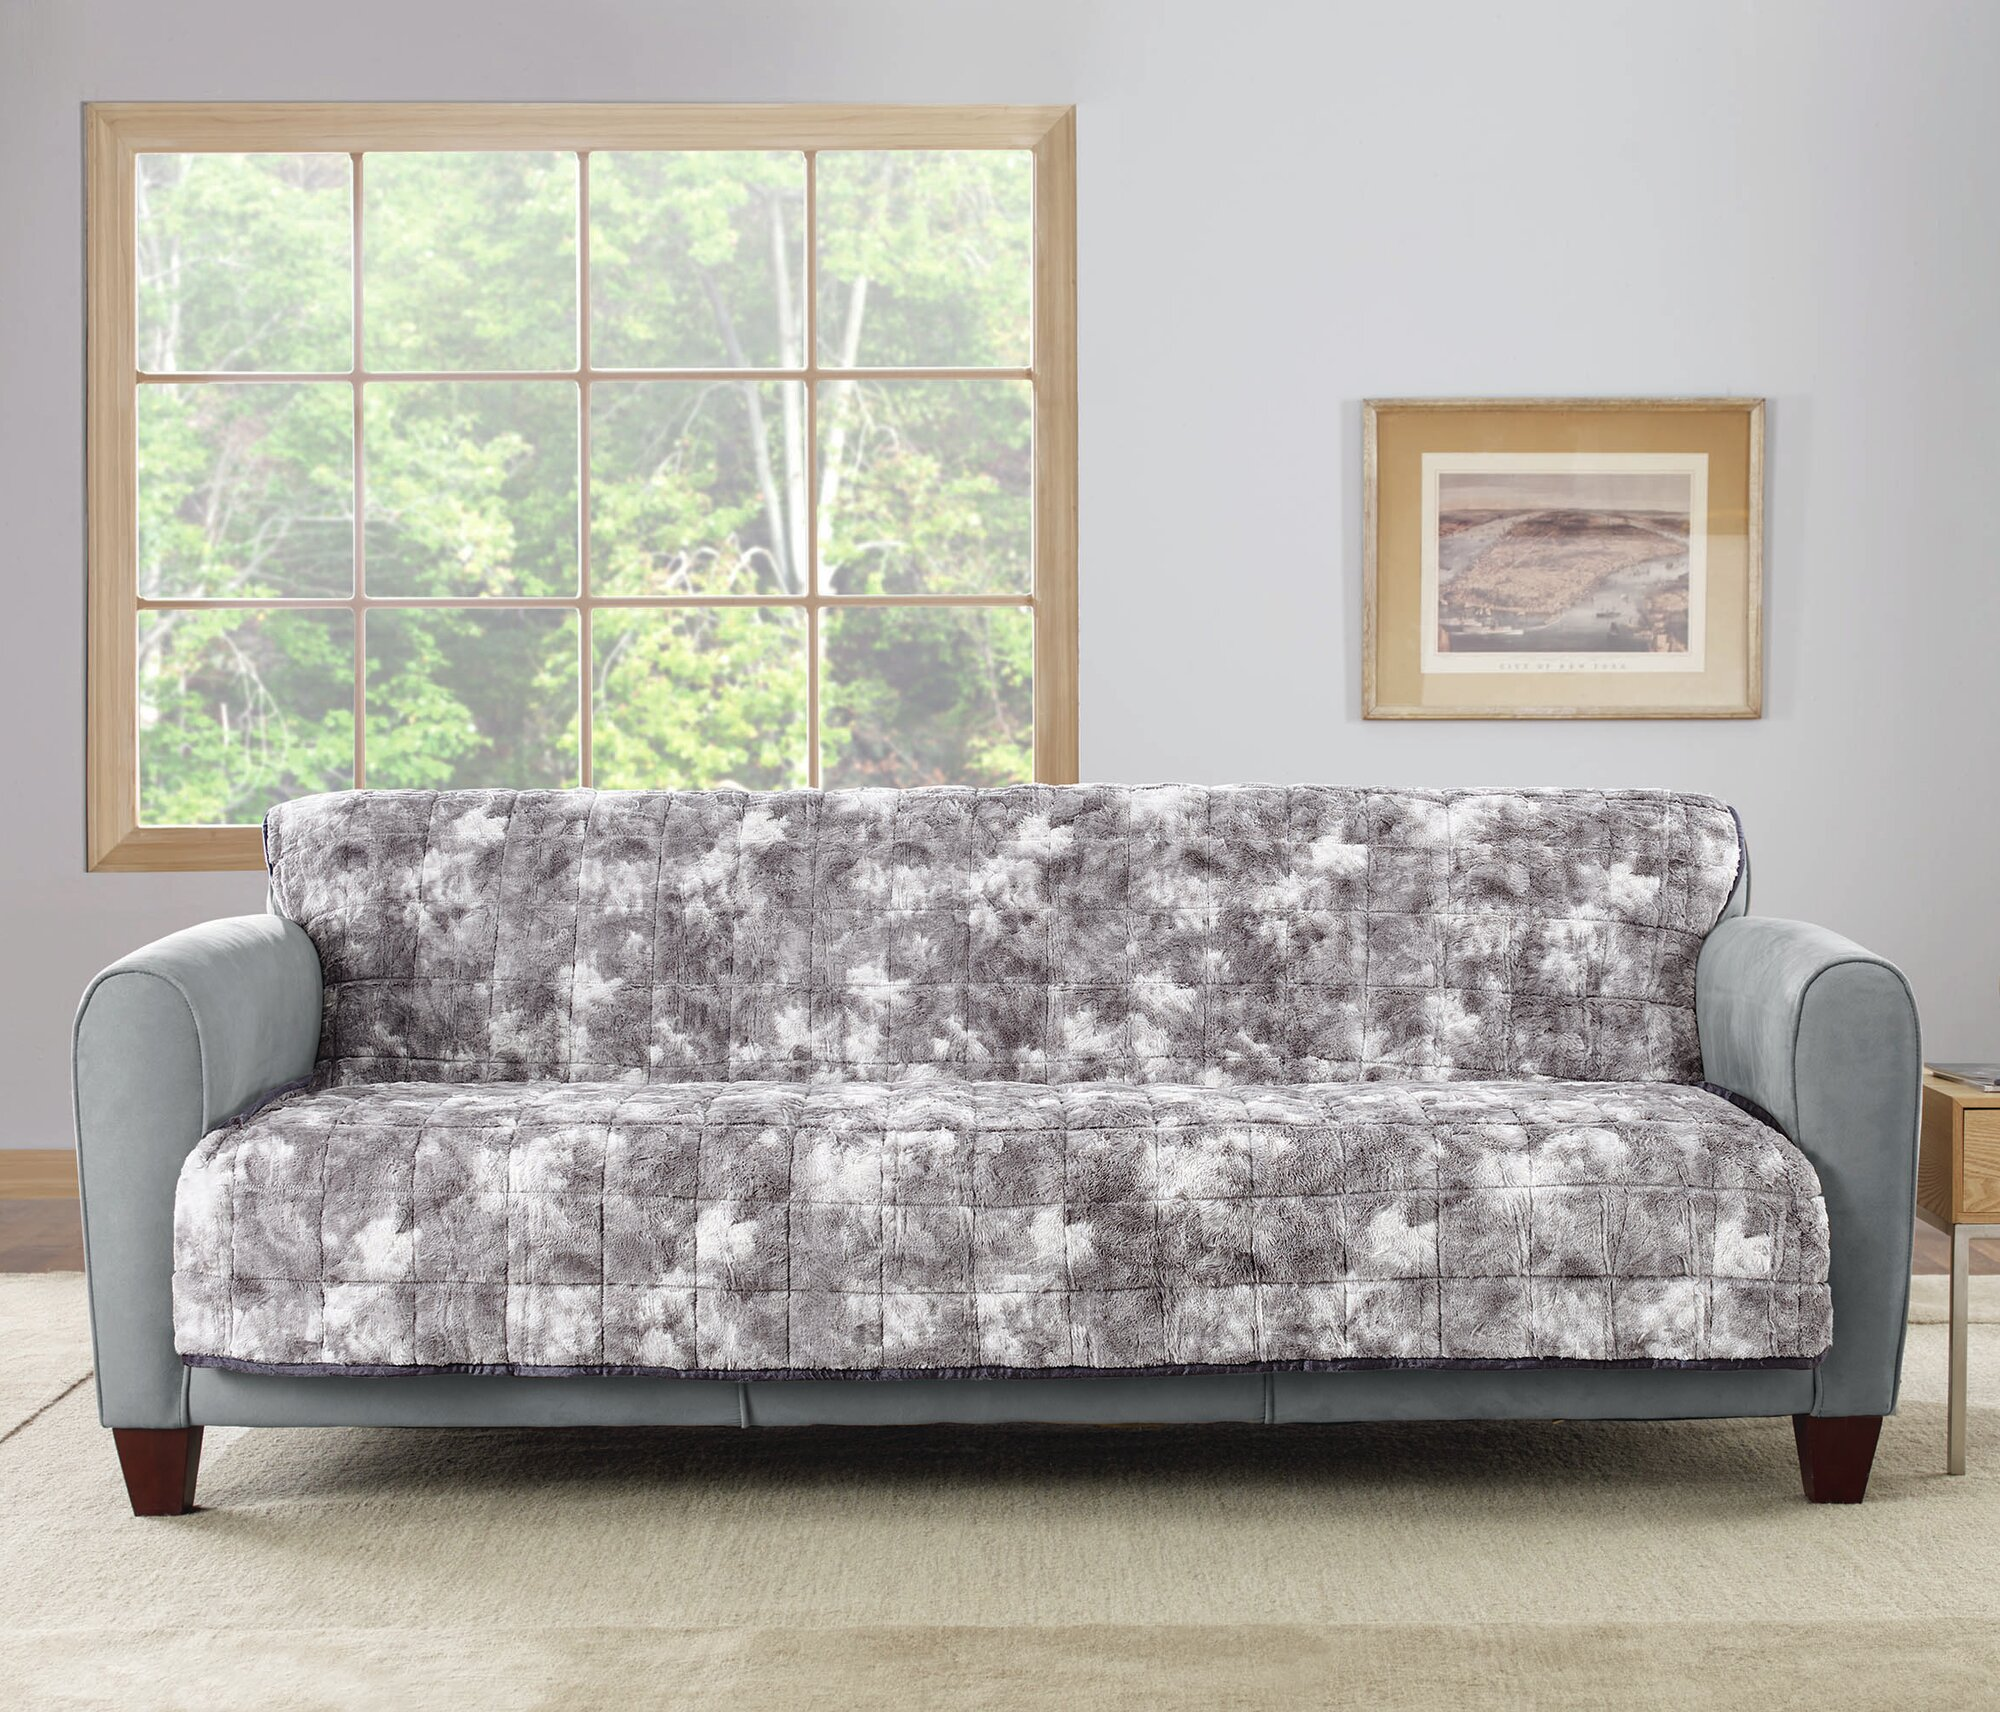 Sure Fit Faux Fur Quilted Sofa Slipcover eBay : 1 from www.ebay.com size 2000 x 1712 jpeg 915kB